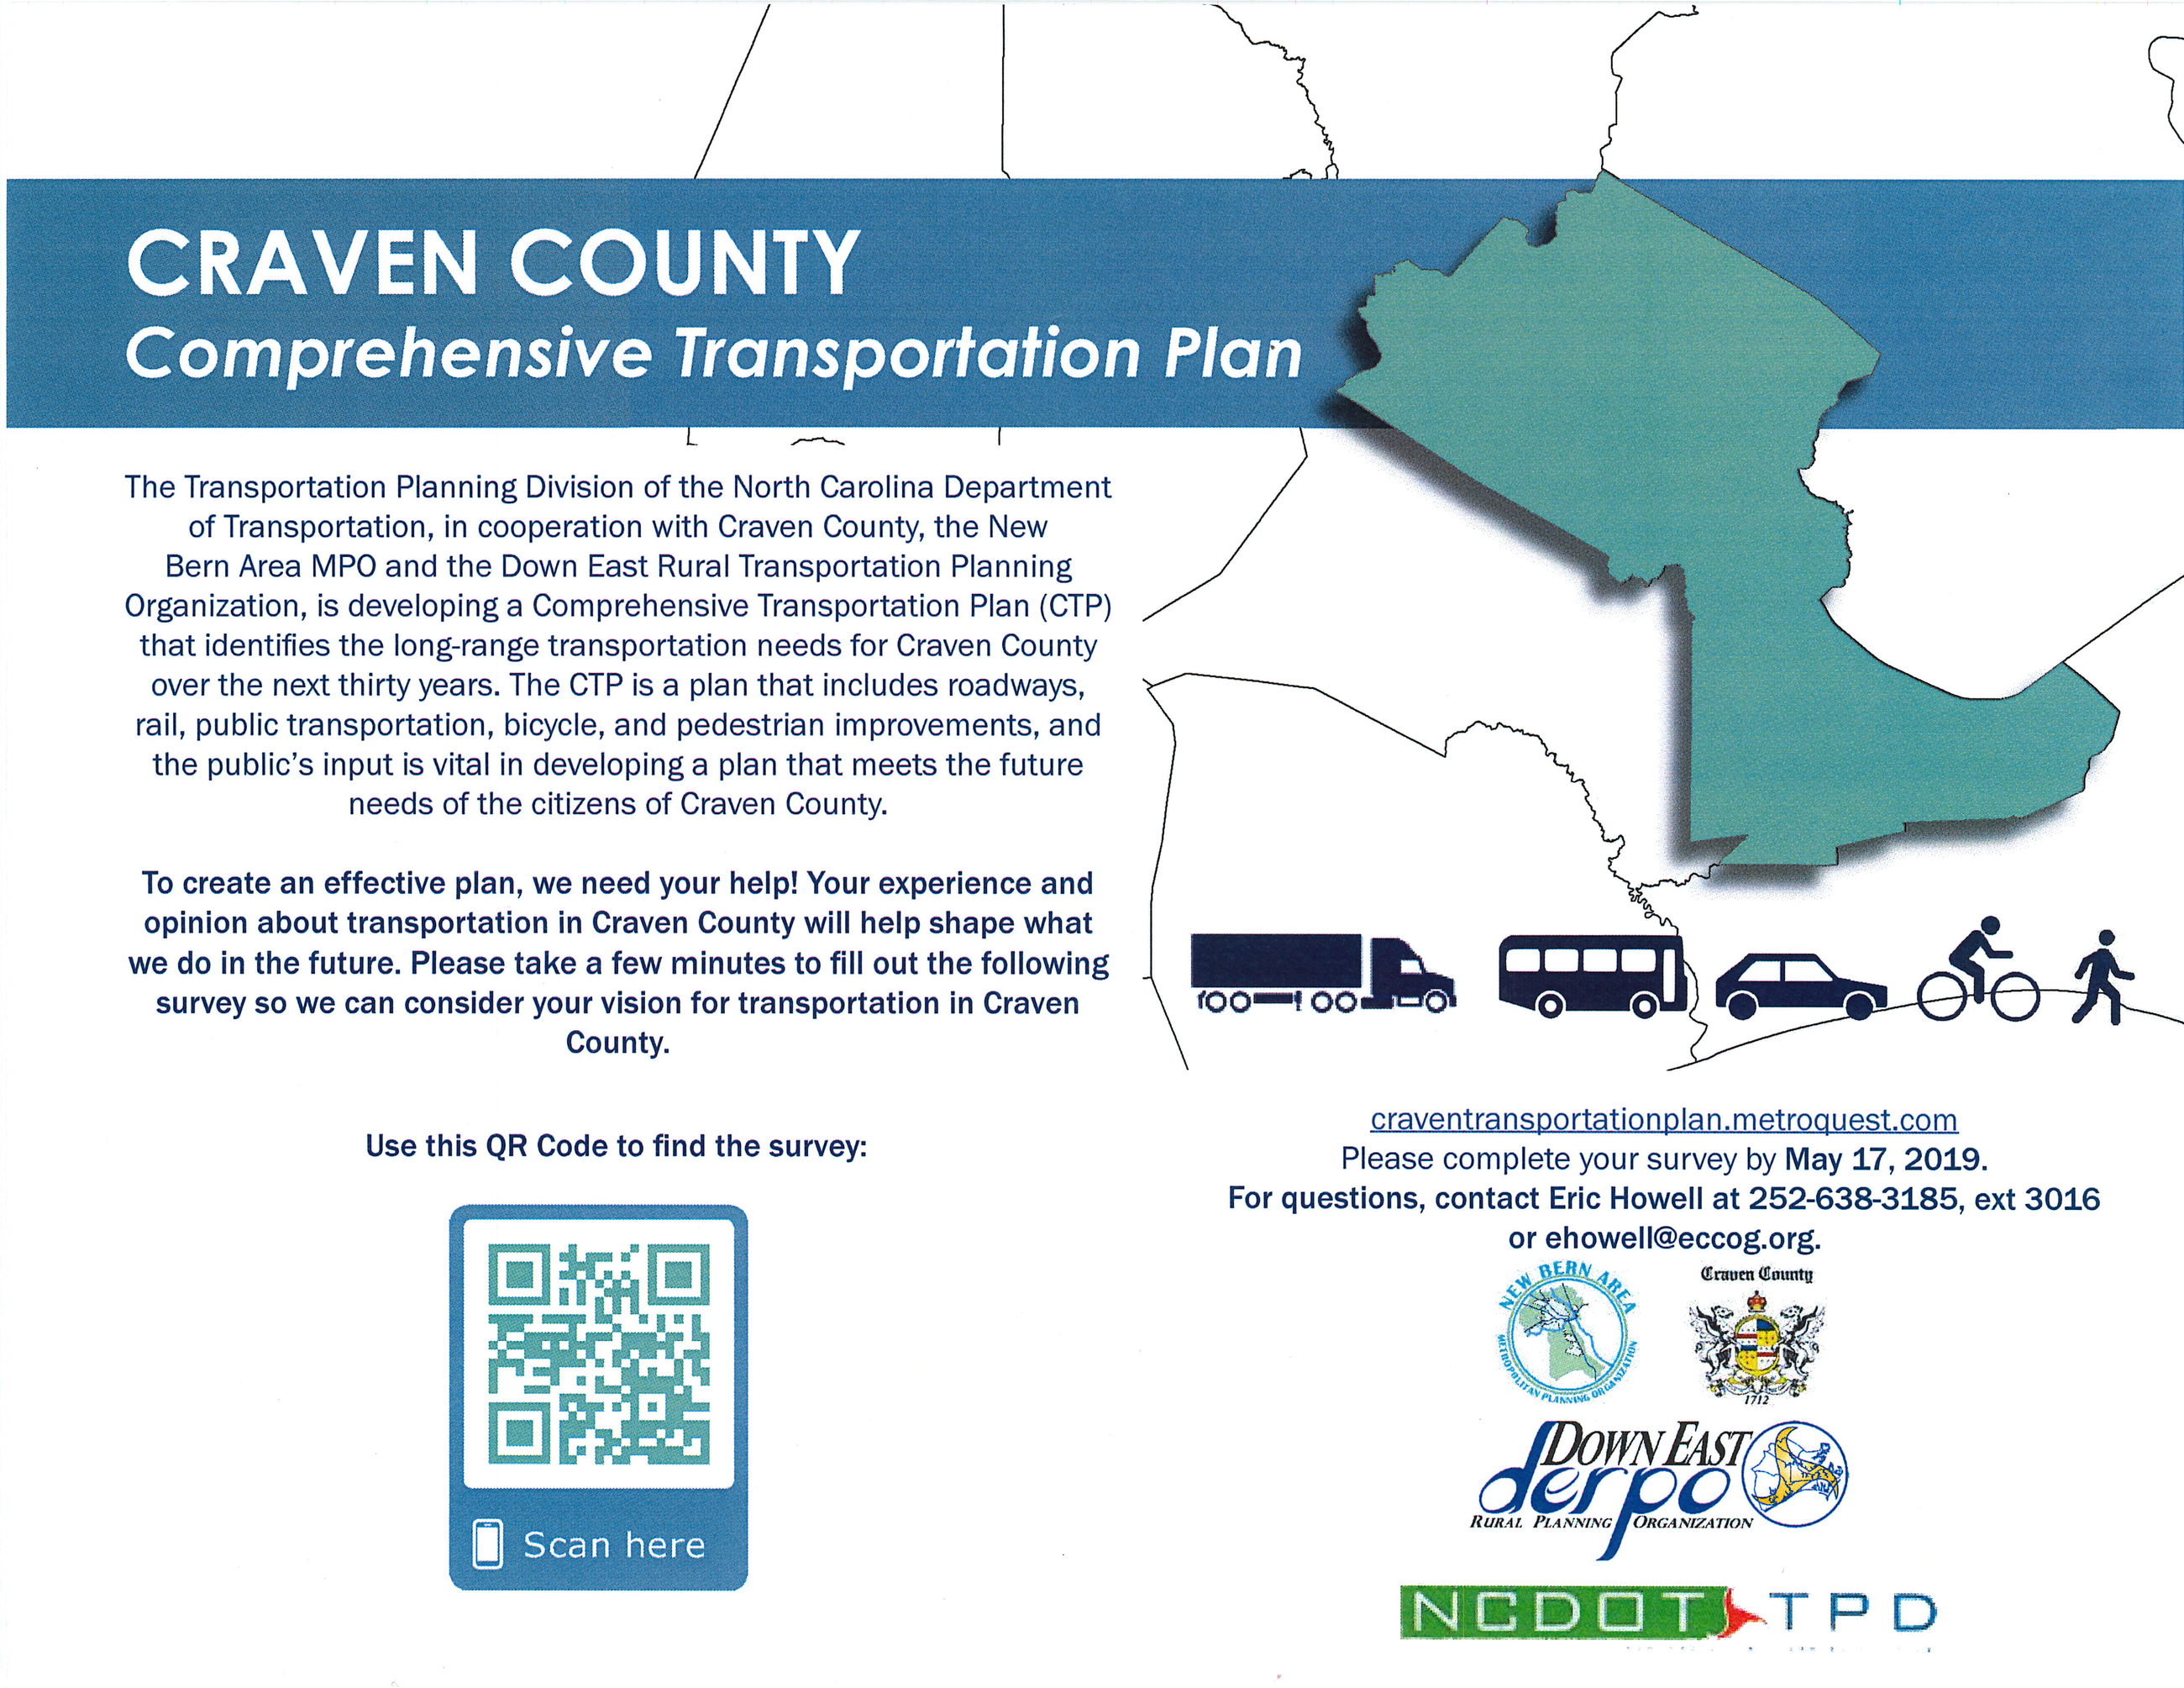 Craven County Comprehensive Transportation Plan Survey, 05-17-2019